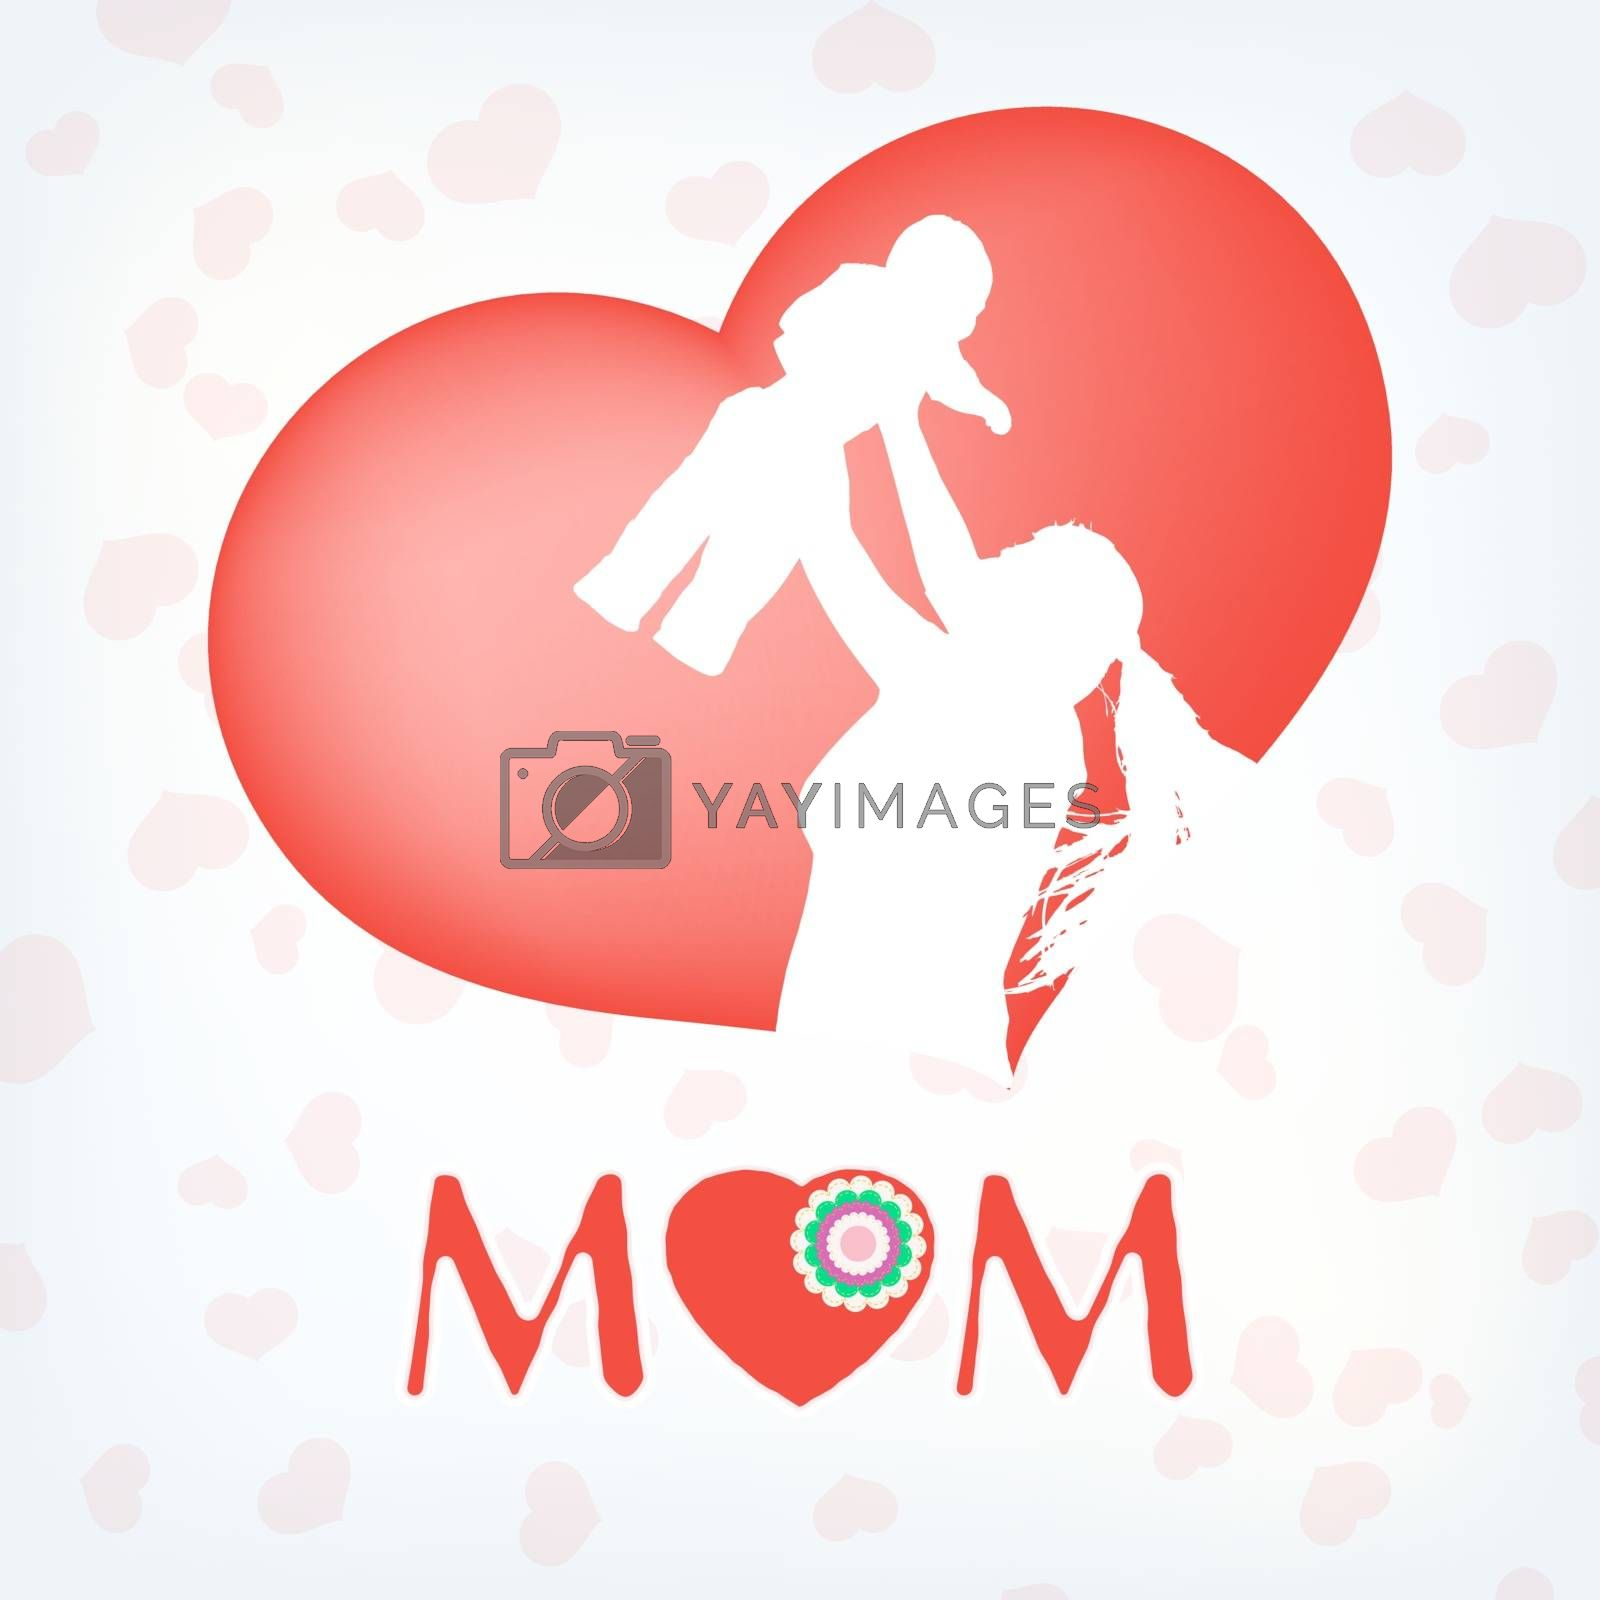 Silhouette of a mother and her child. EPS 10 vector file included